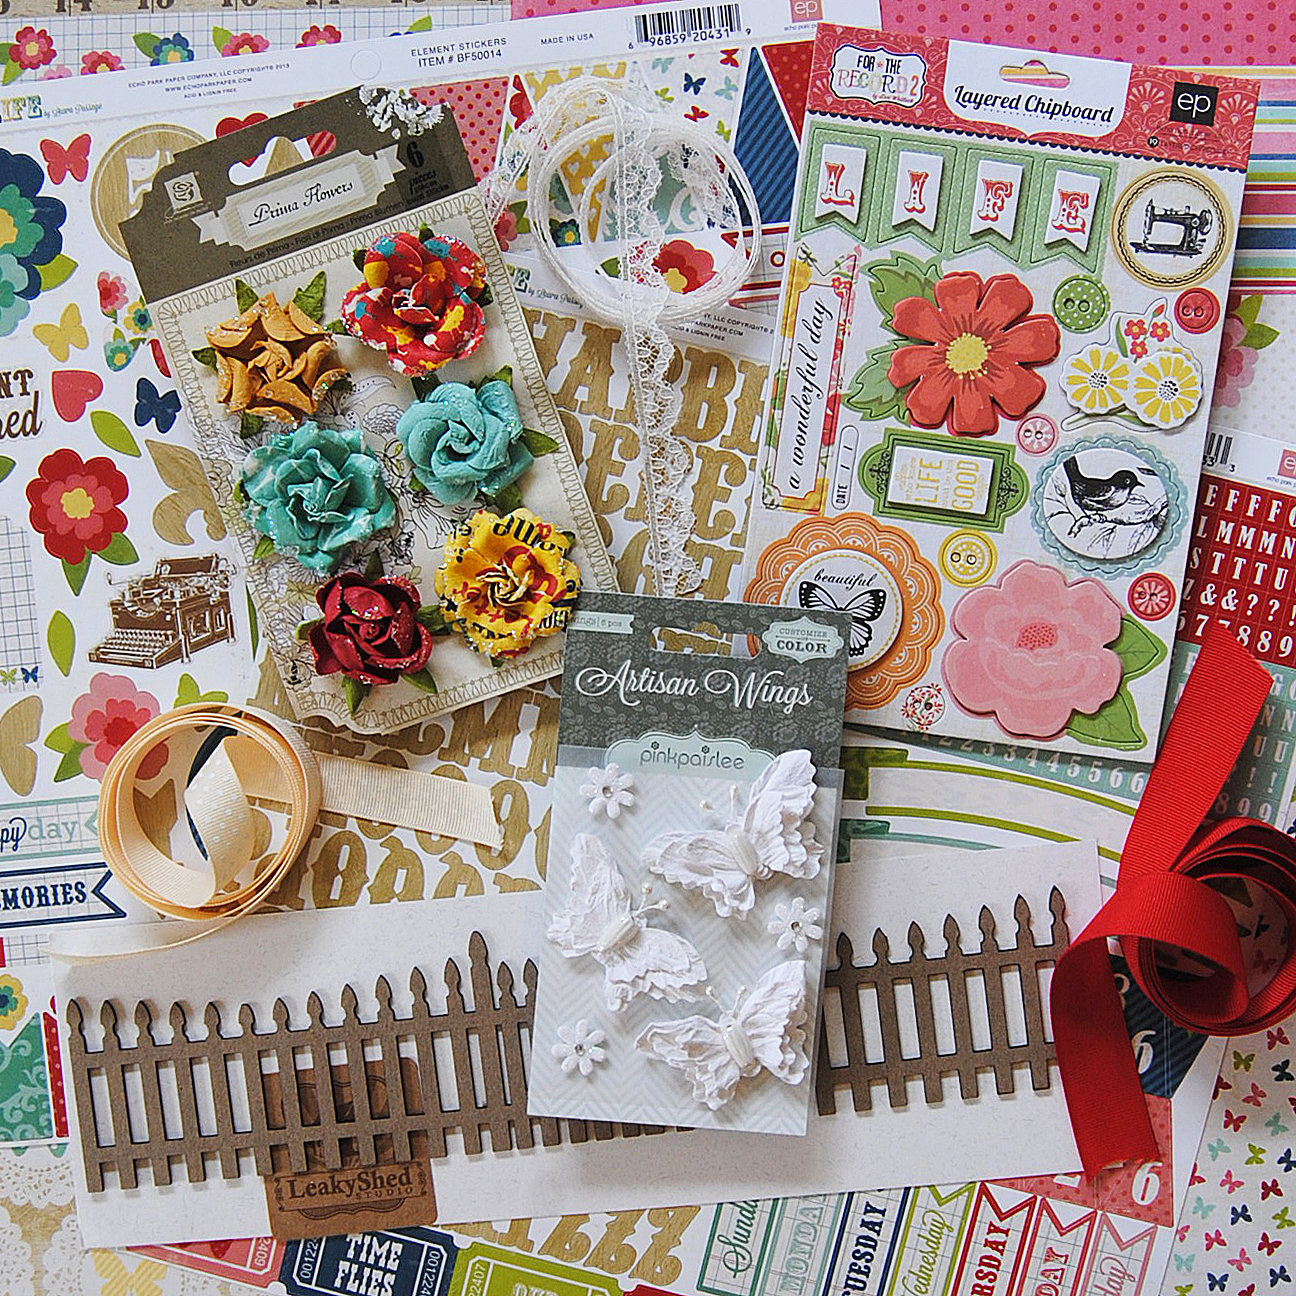 How to make scrapbook creative - My Creative Scrapbook Is Currently Accepting New Members To Make A Purchase Please Visit The Website Here